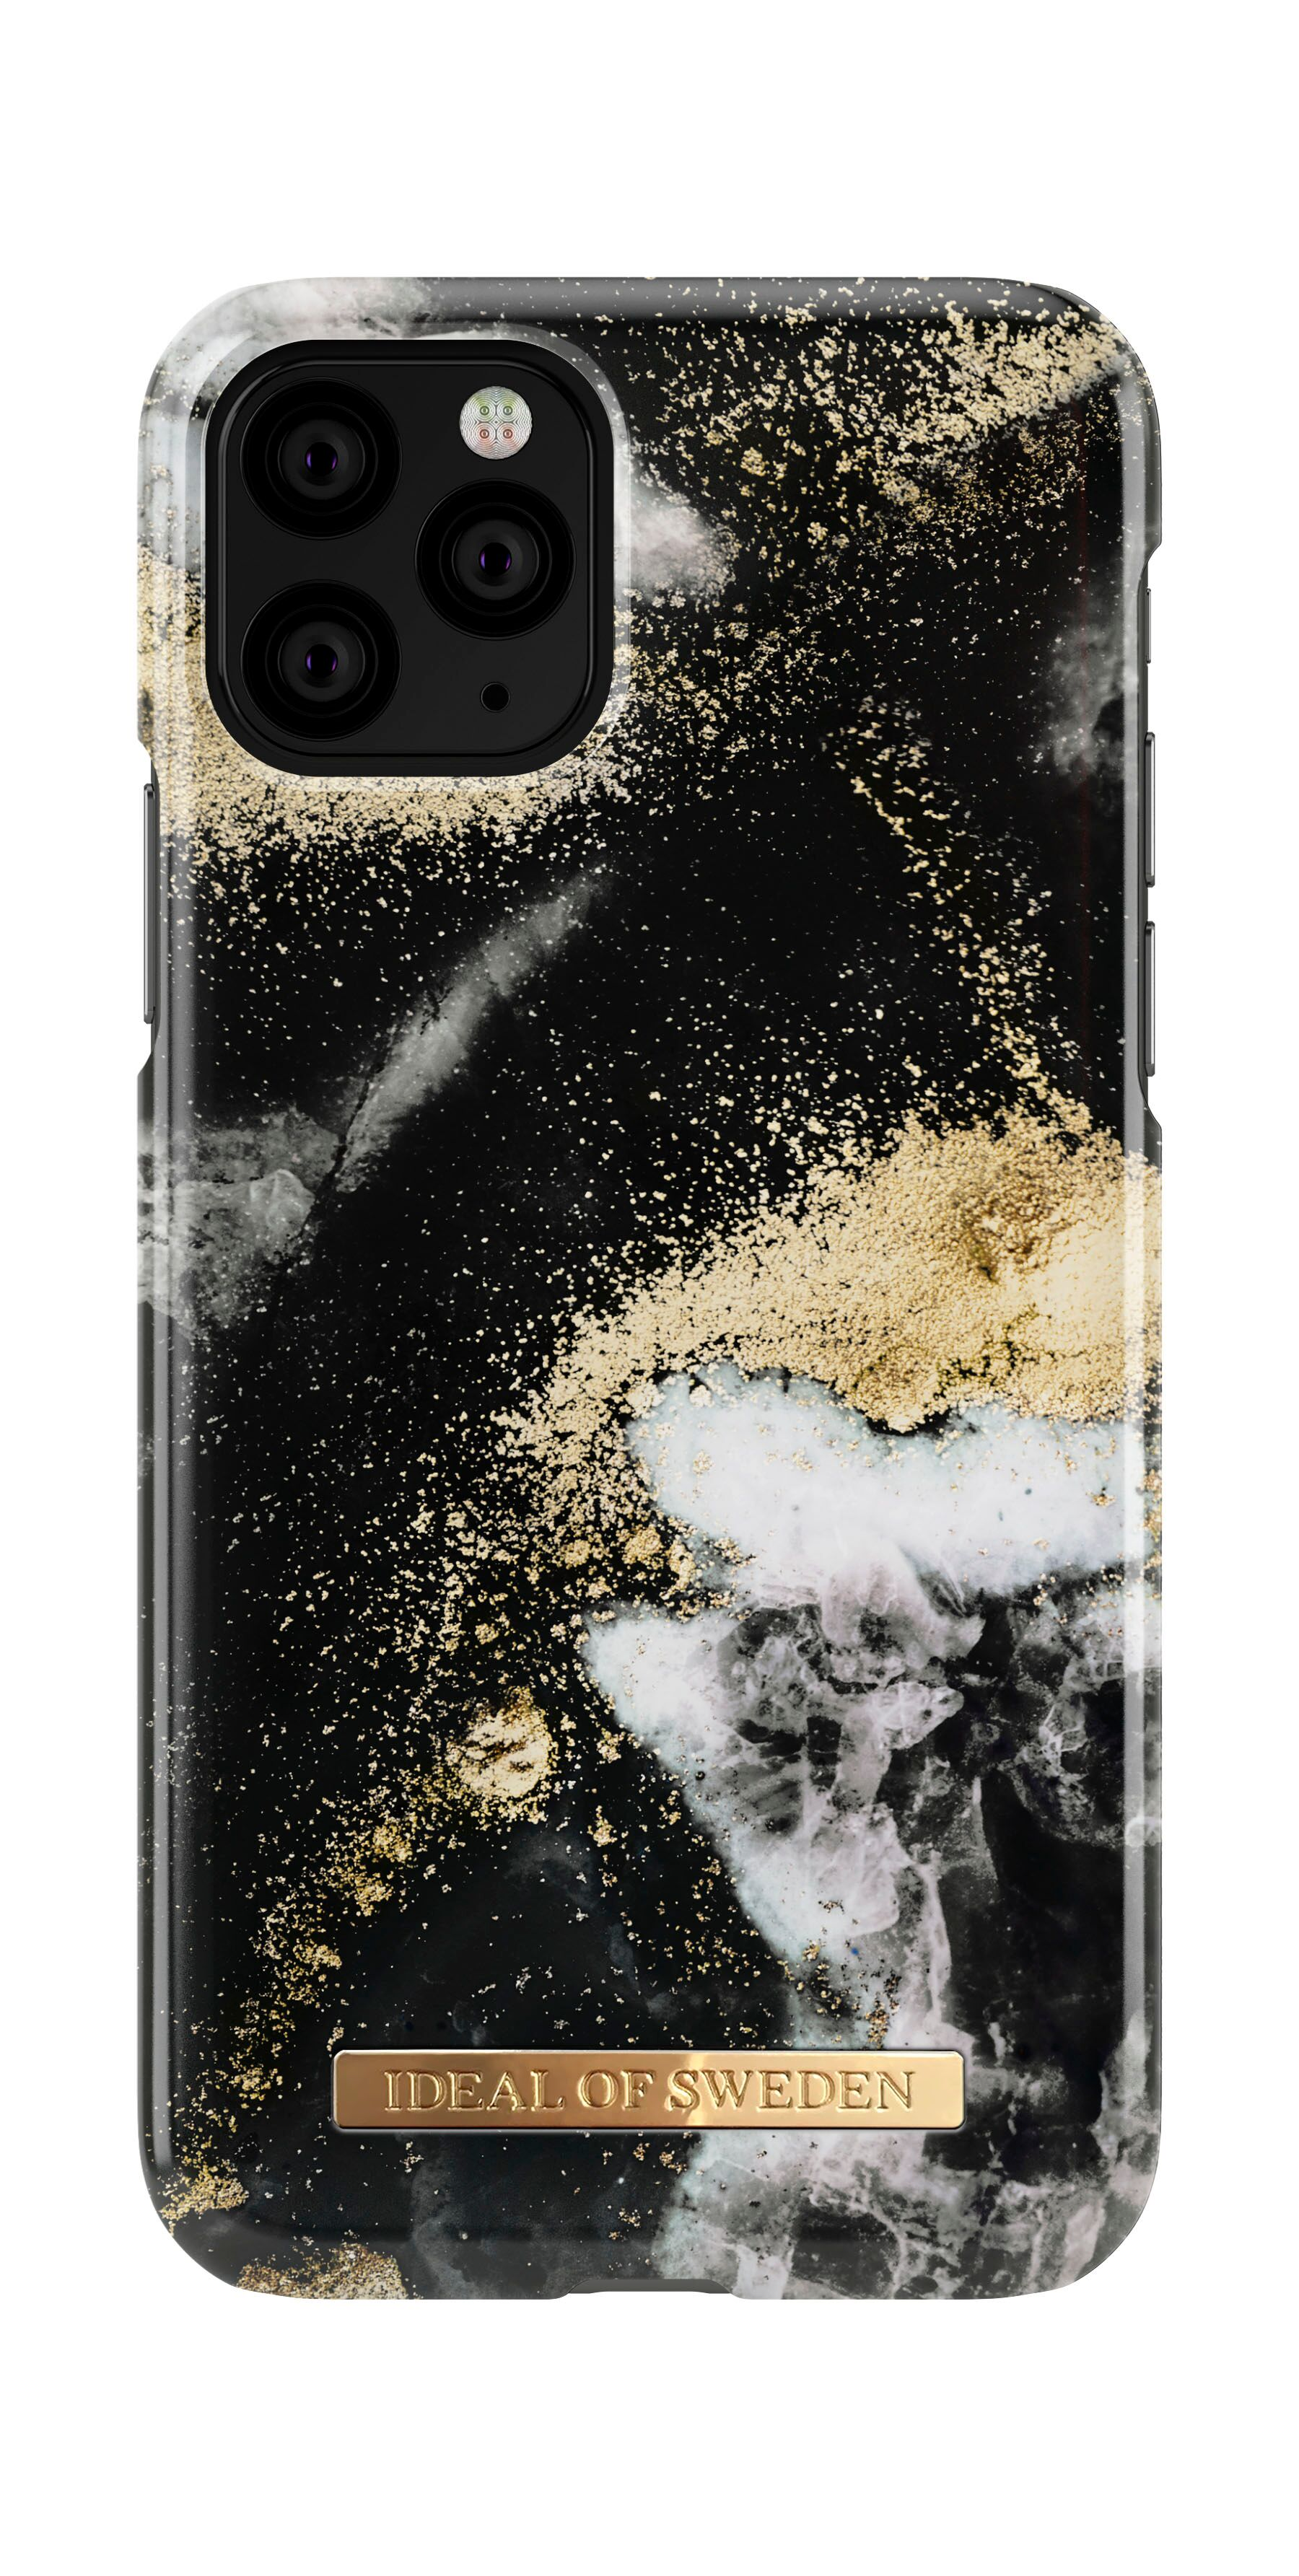 iDeal Of Sweden Cover Black Galaxy Marble iPhone 11 PRO/XS/S